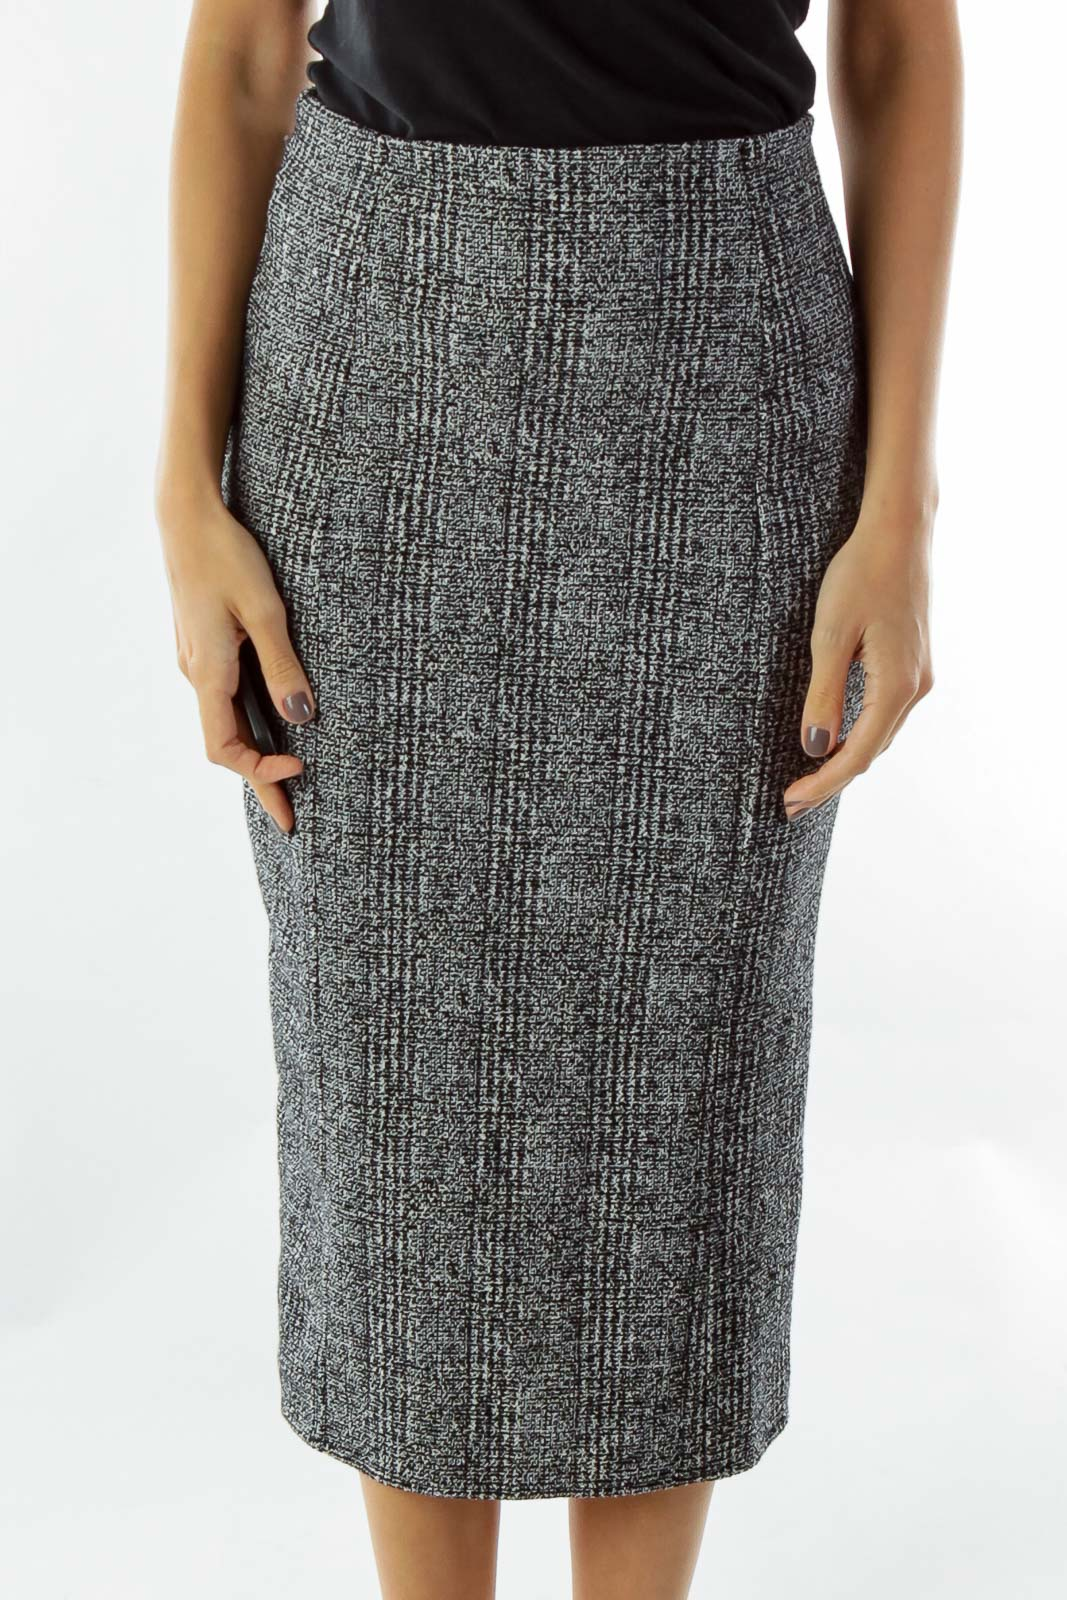 Black White Tweed Pencil Skirt